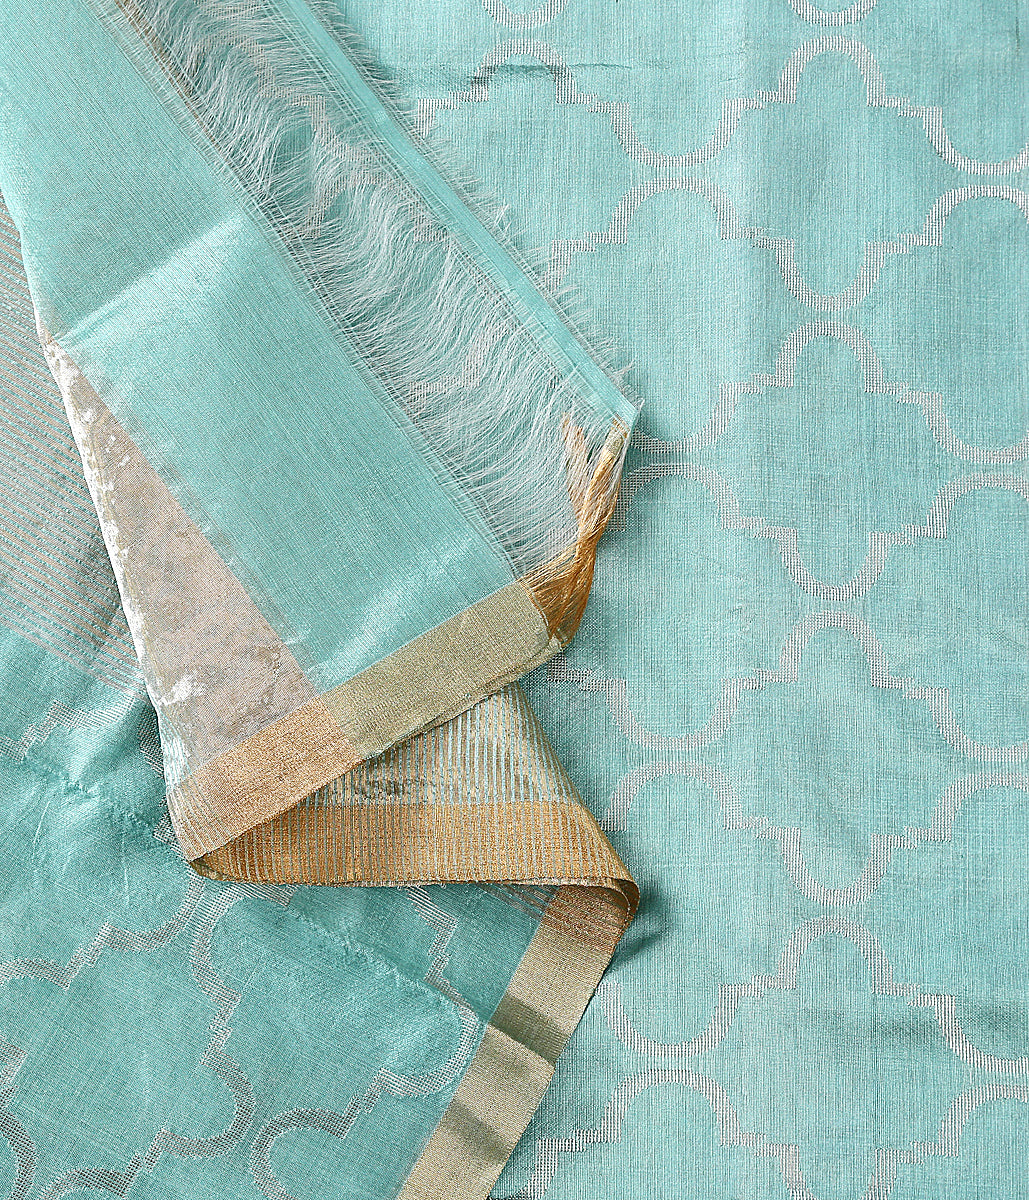 Handwoven Chanderi silk dupatta in sky blue wovne with rich silver zari